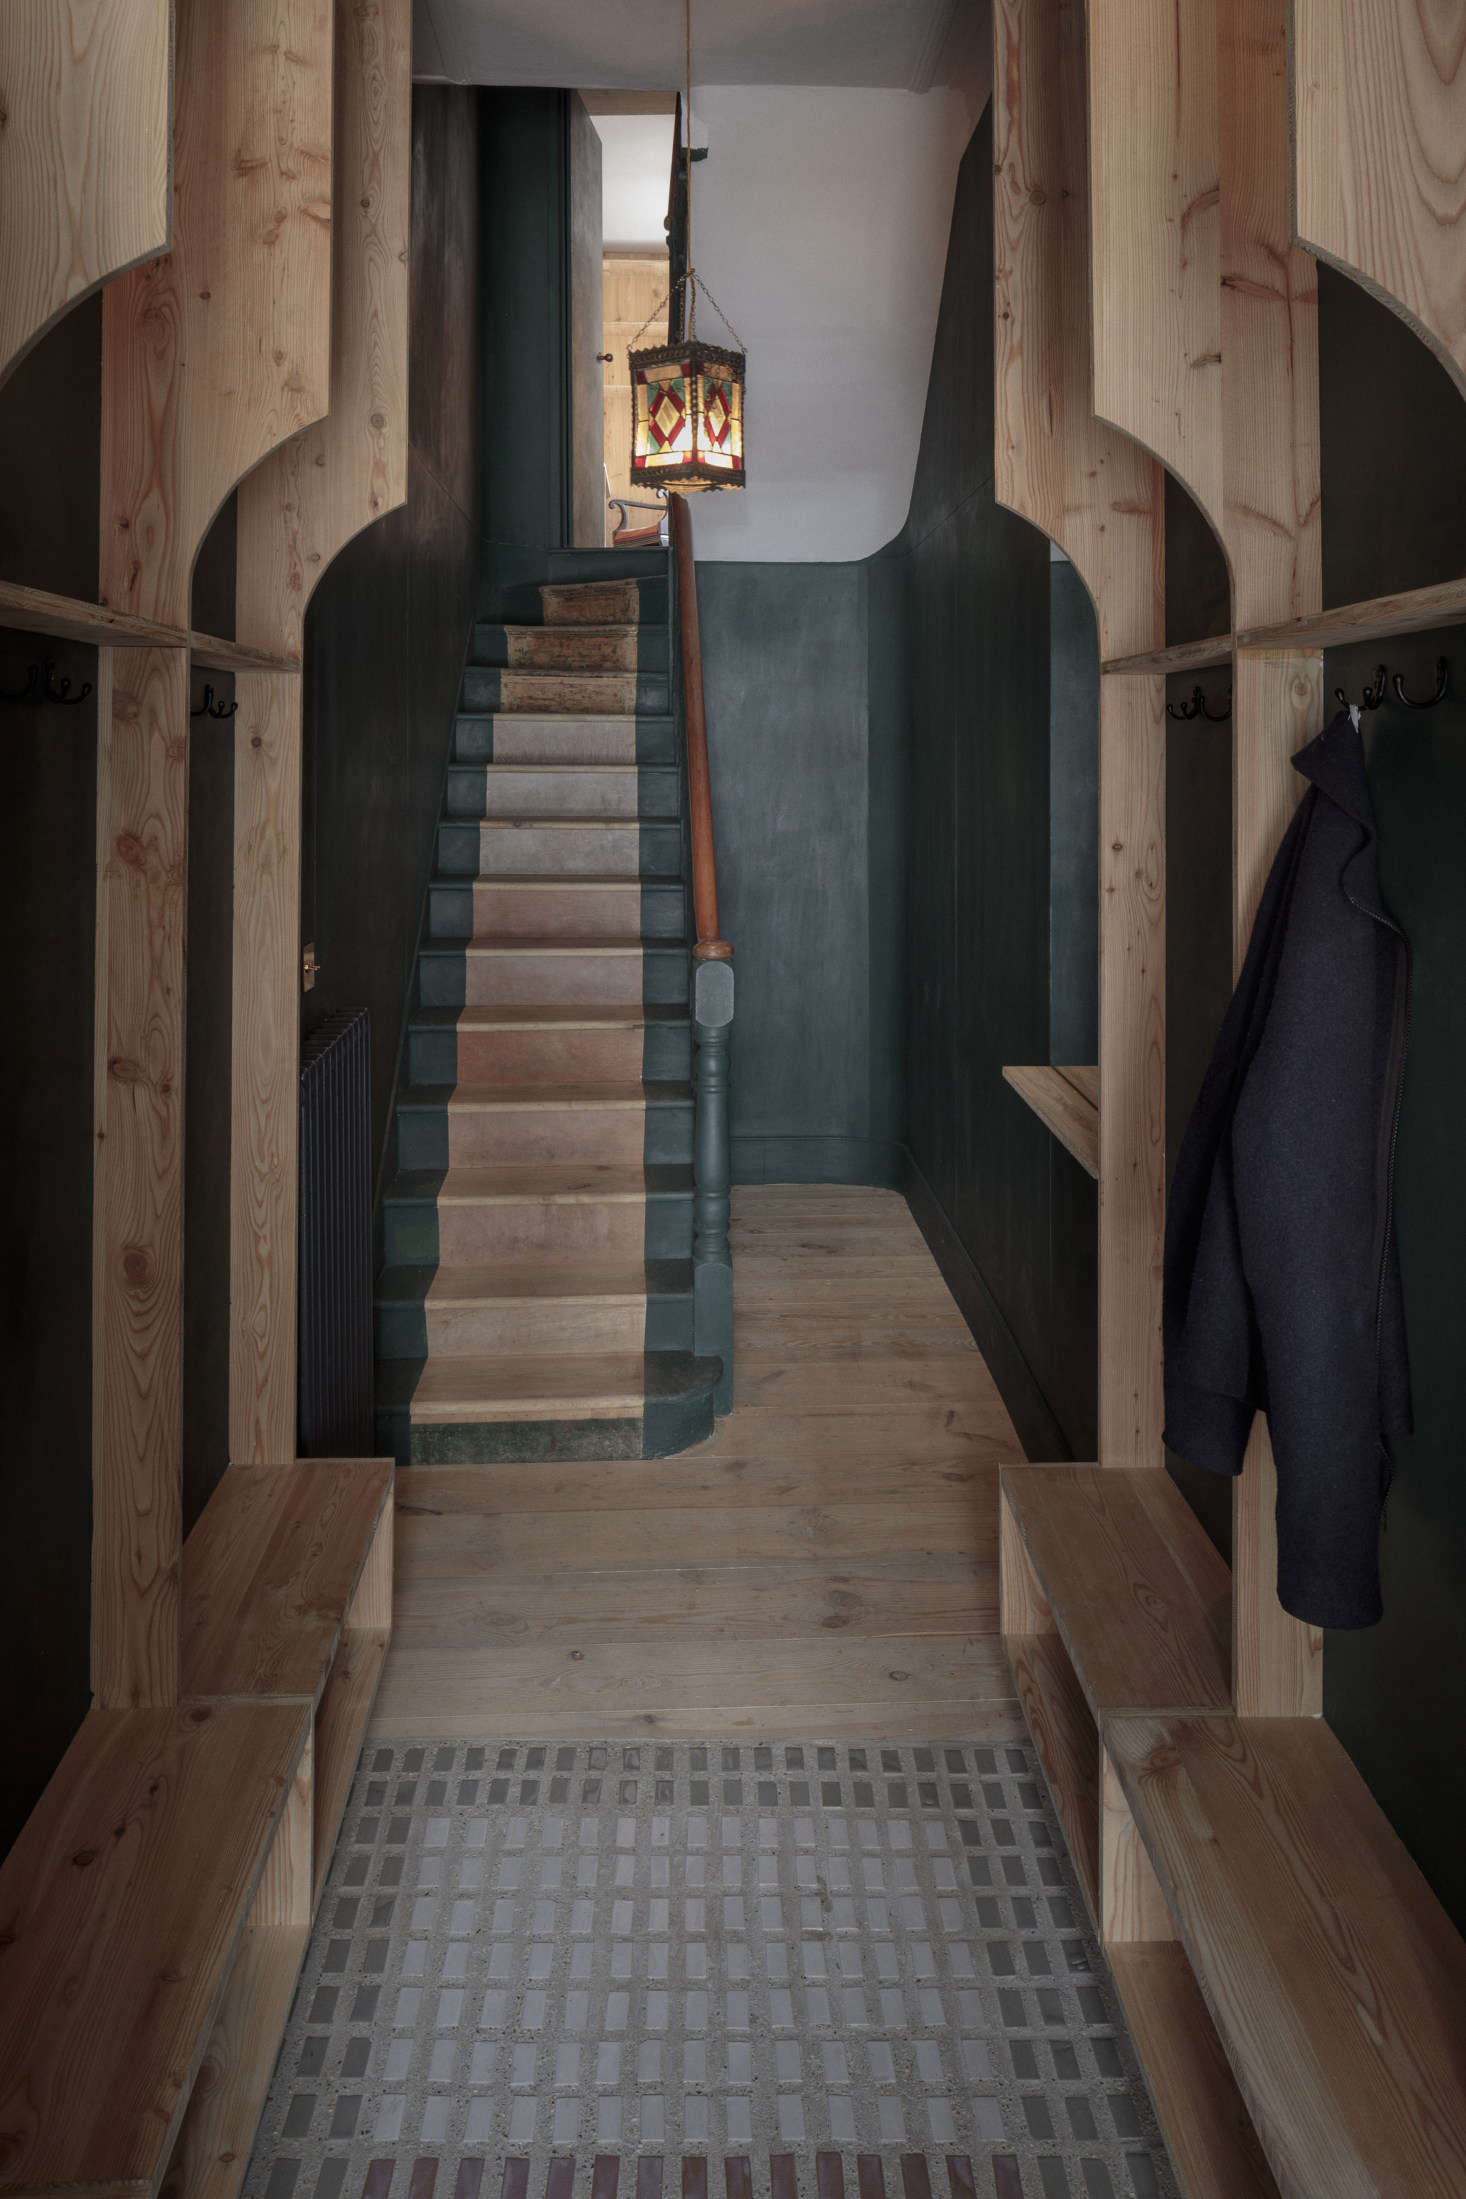 The entrance hall on the ground floor has its own two-toned stair in the same dark green (that&#8